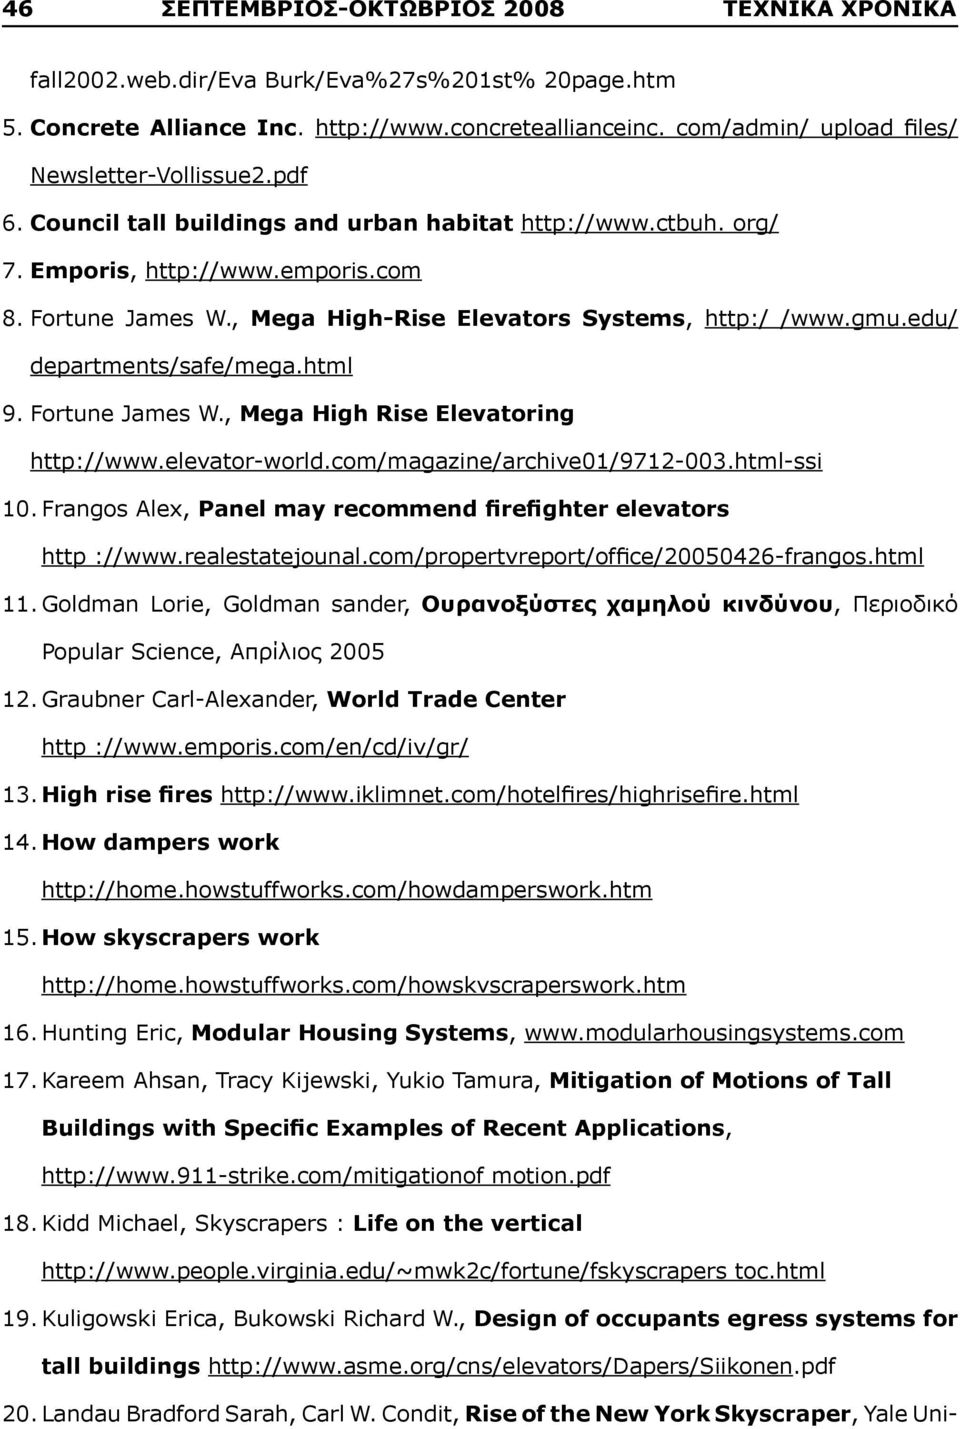 , Mega High-Rise Elevators Systems, http:/ /www.gmu.edu/ departments/safe/mega.html 9. Fortune James W., Mega High Rise Elevatoring http://www.elevator-world.com/magazine/archive01/9712-003.